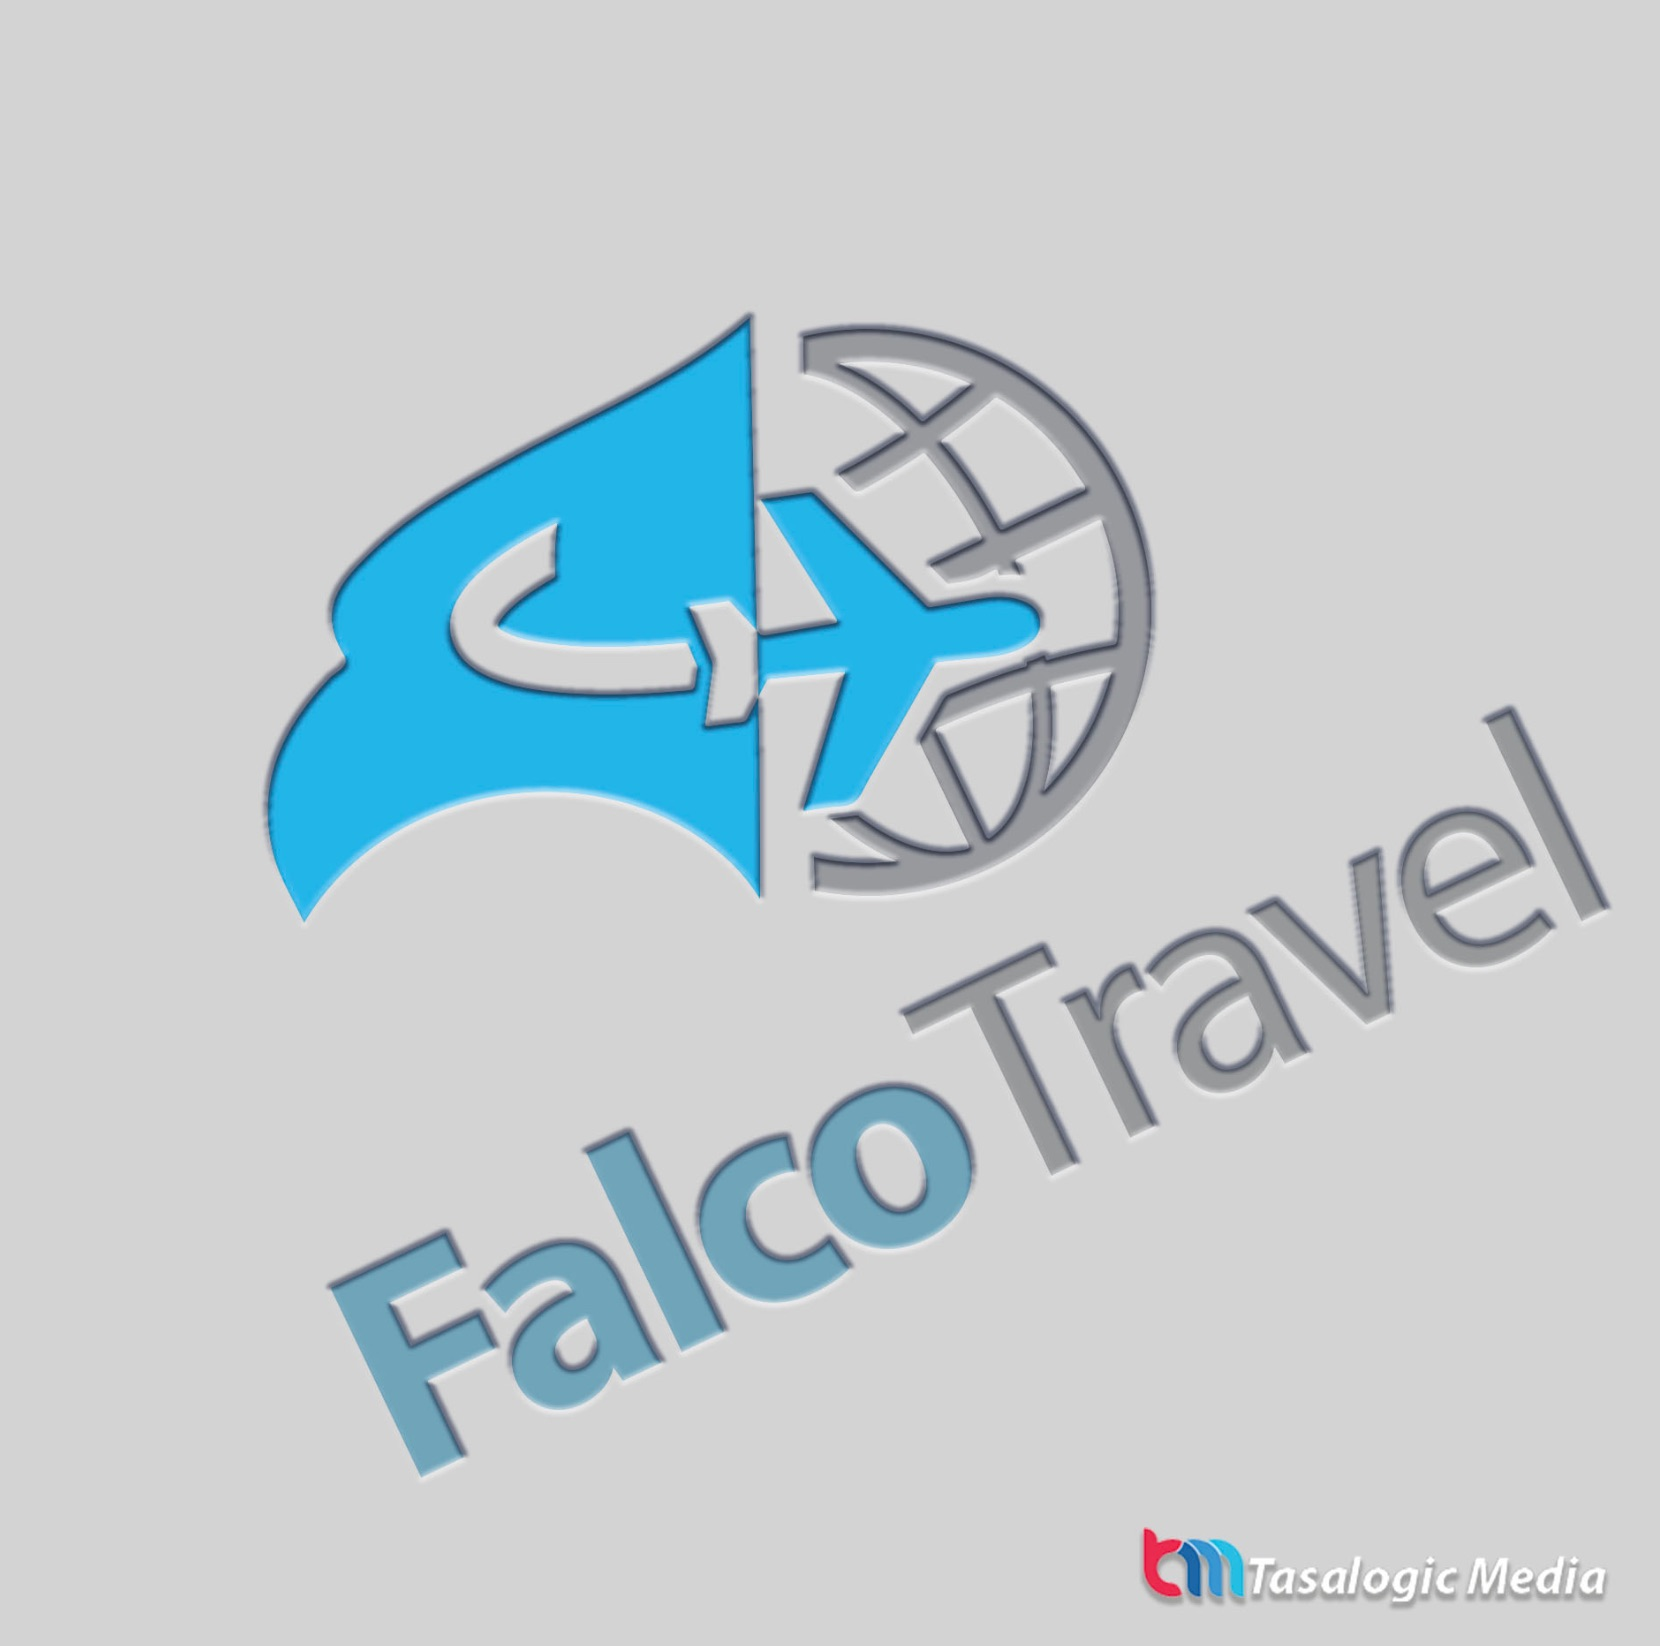 Tasalogic-Media-logo-falcotravel